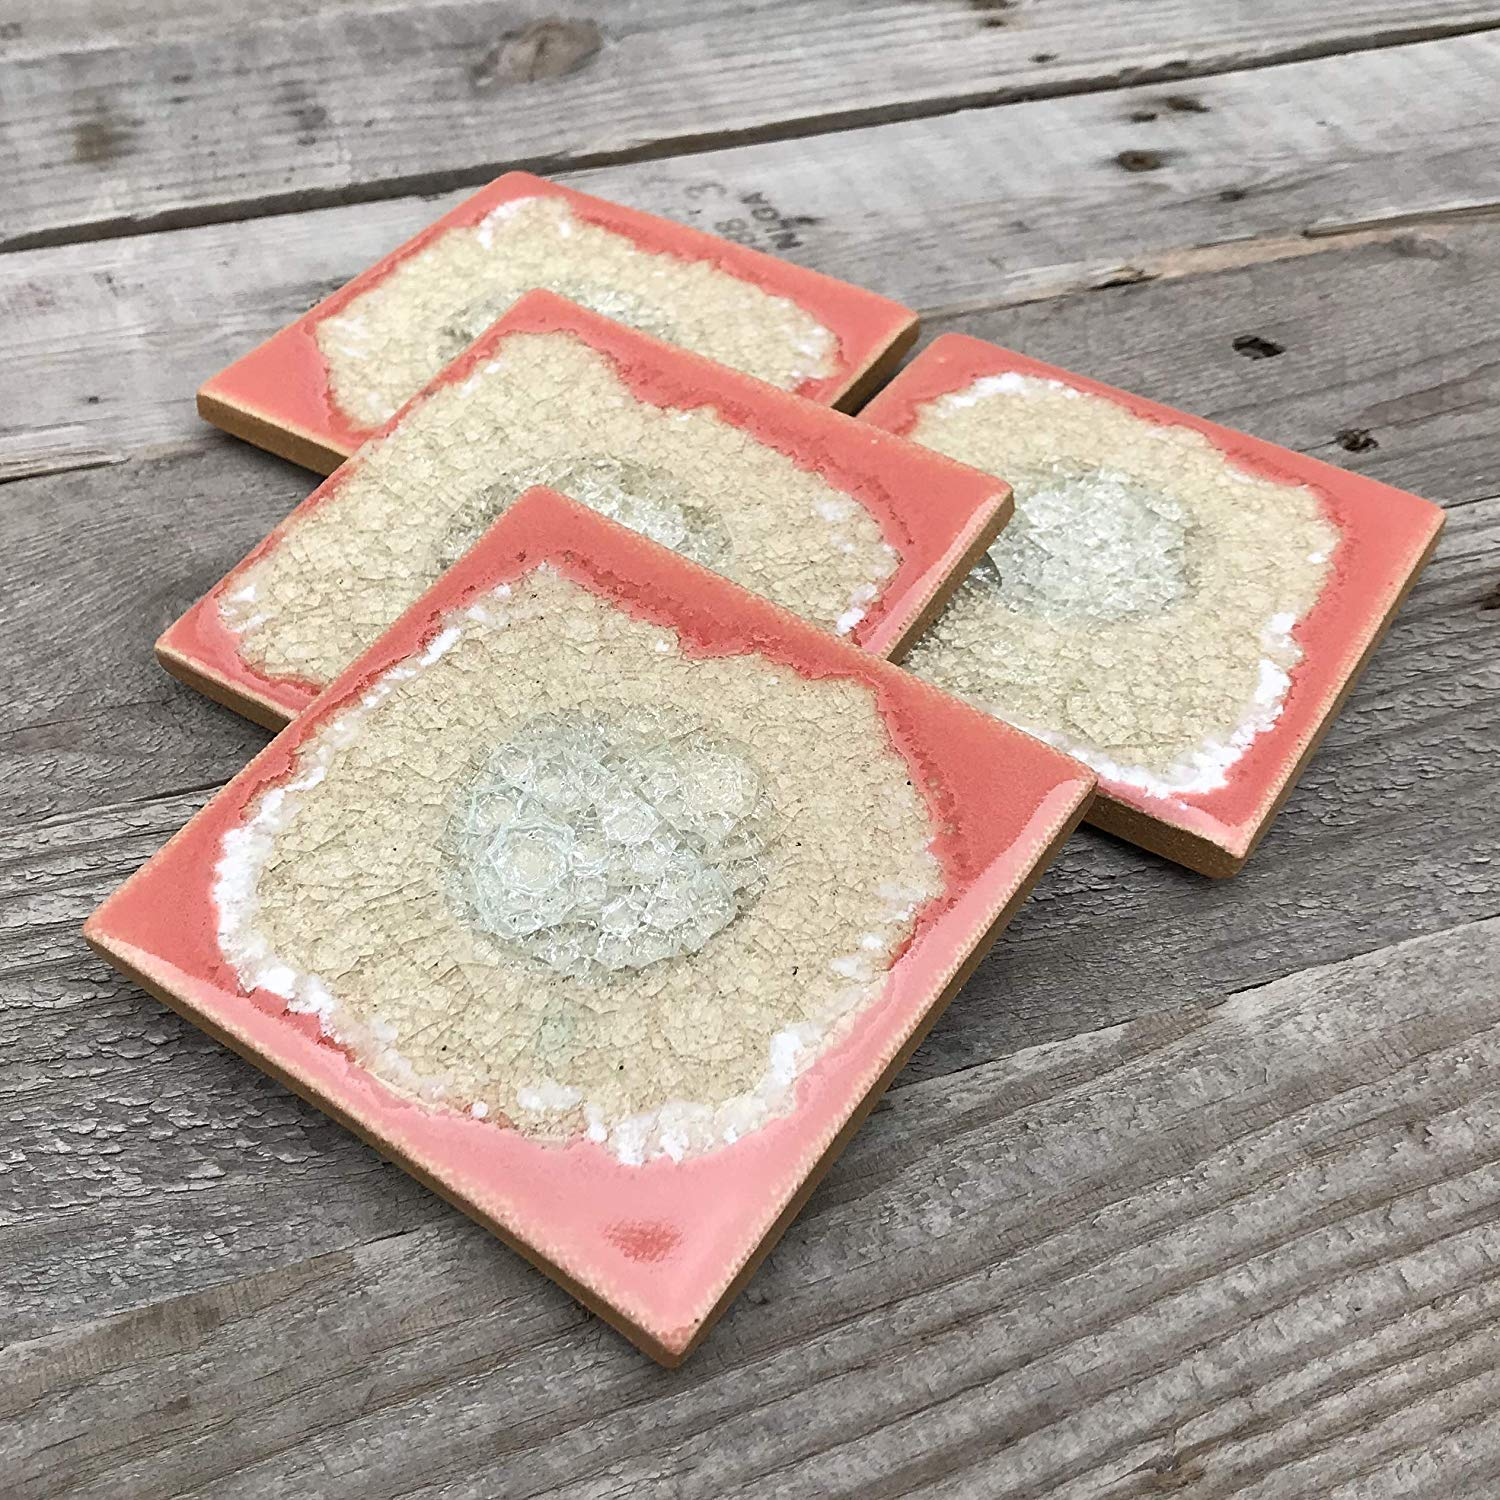 Geode Crackle Coaster Set of 4 in CORAL: Geode Coaster, Crackle Coaster, Fused Glass Coaster, Crackle Glass Coaster, Agate Coaster, Ceramic Coaster, Dock 6 Pottery Coaster